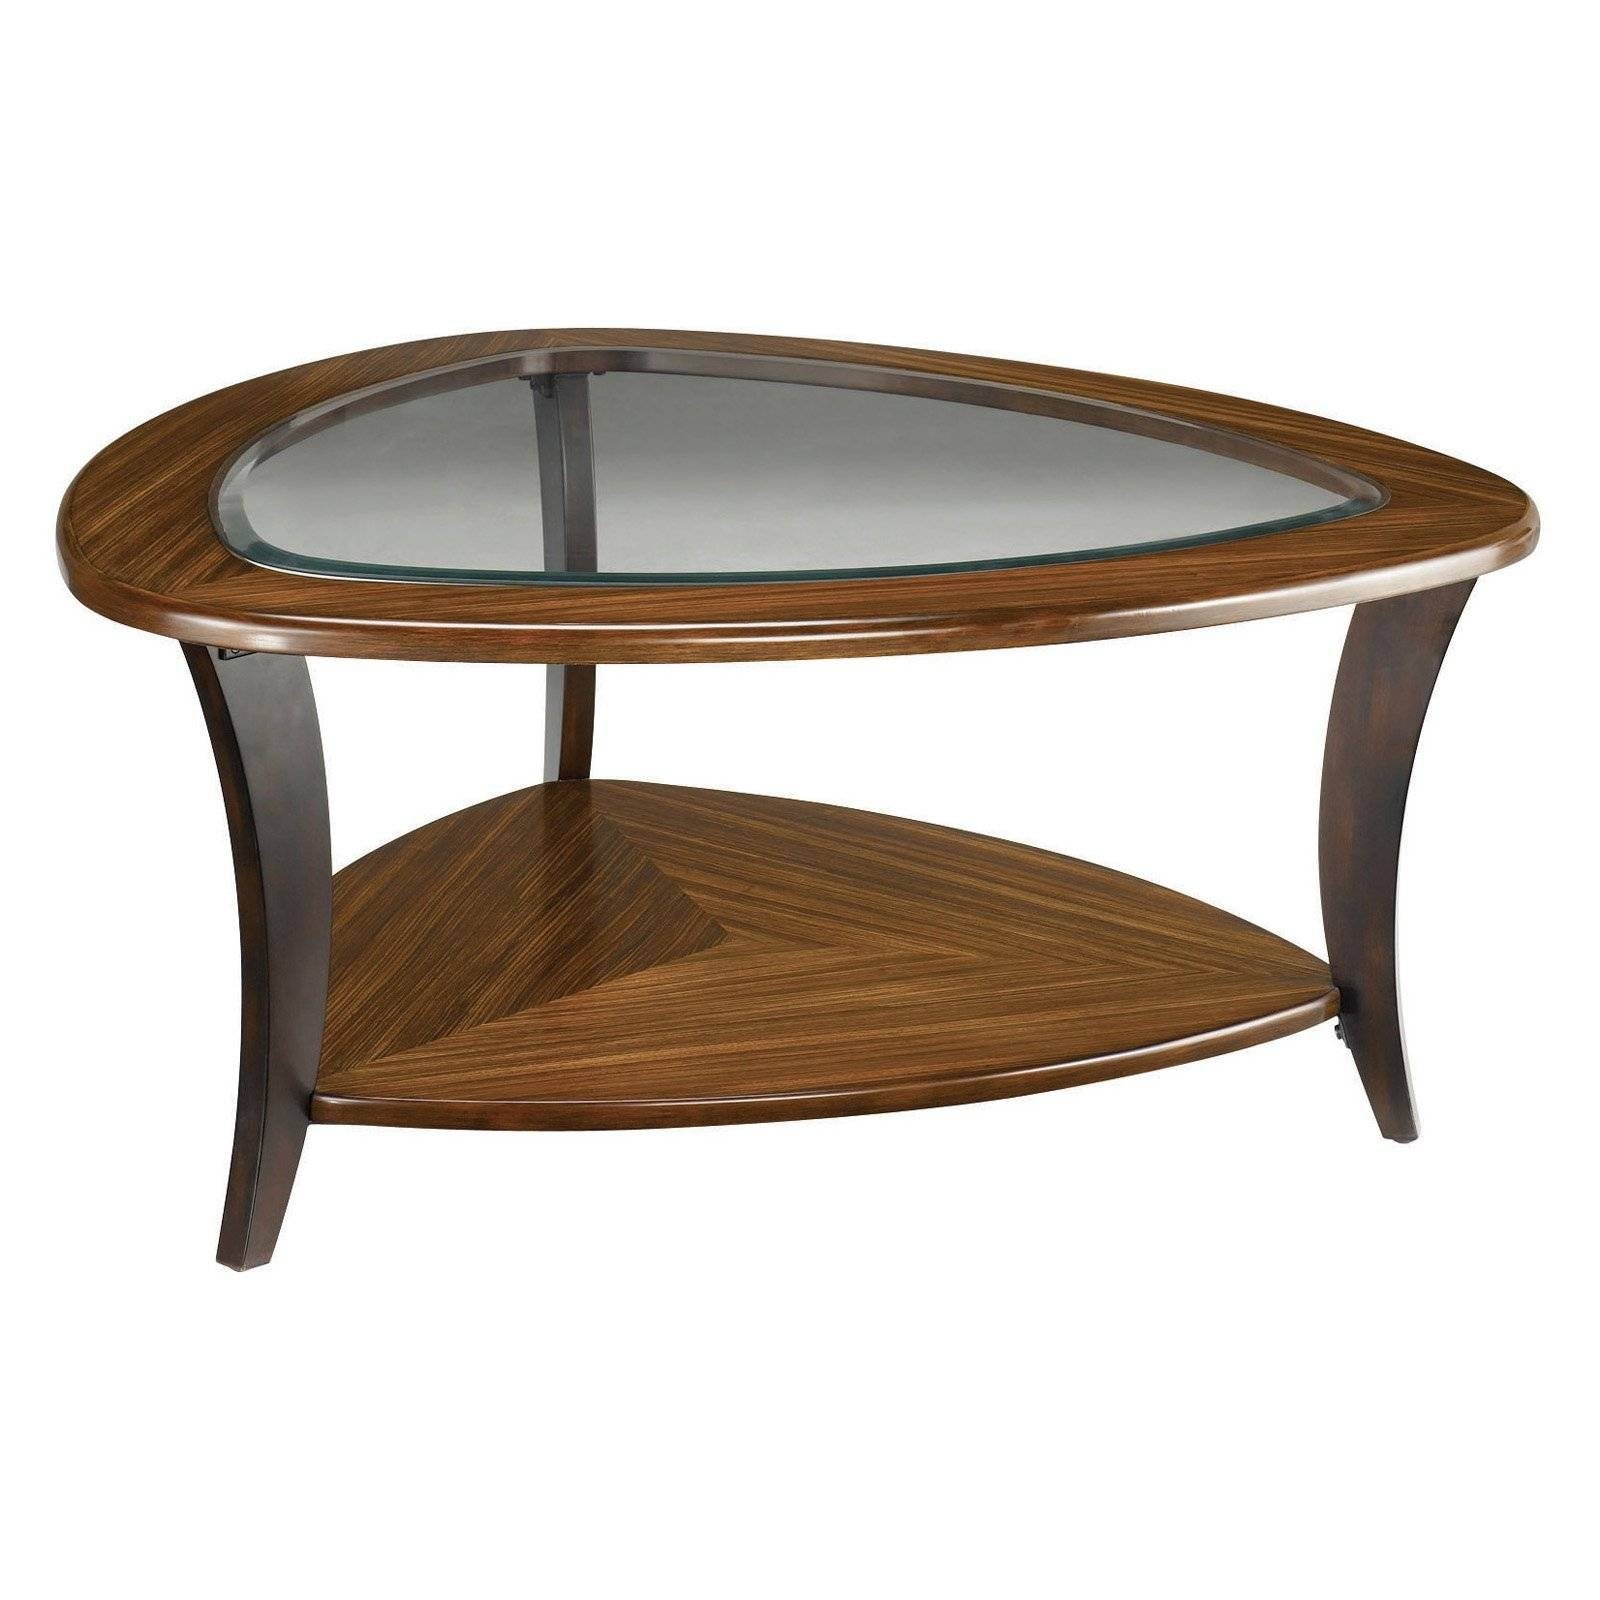 Table. Hayneedle Coffee Table - Home Interior Design throughout Cheap Coffee Tables (Image 30 of 30)